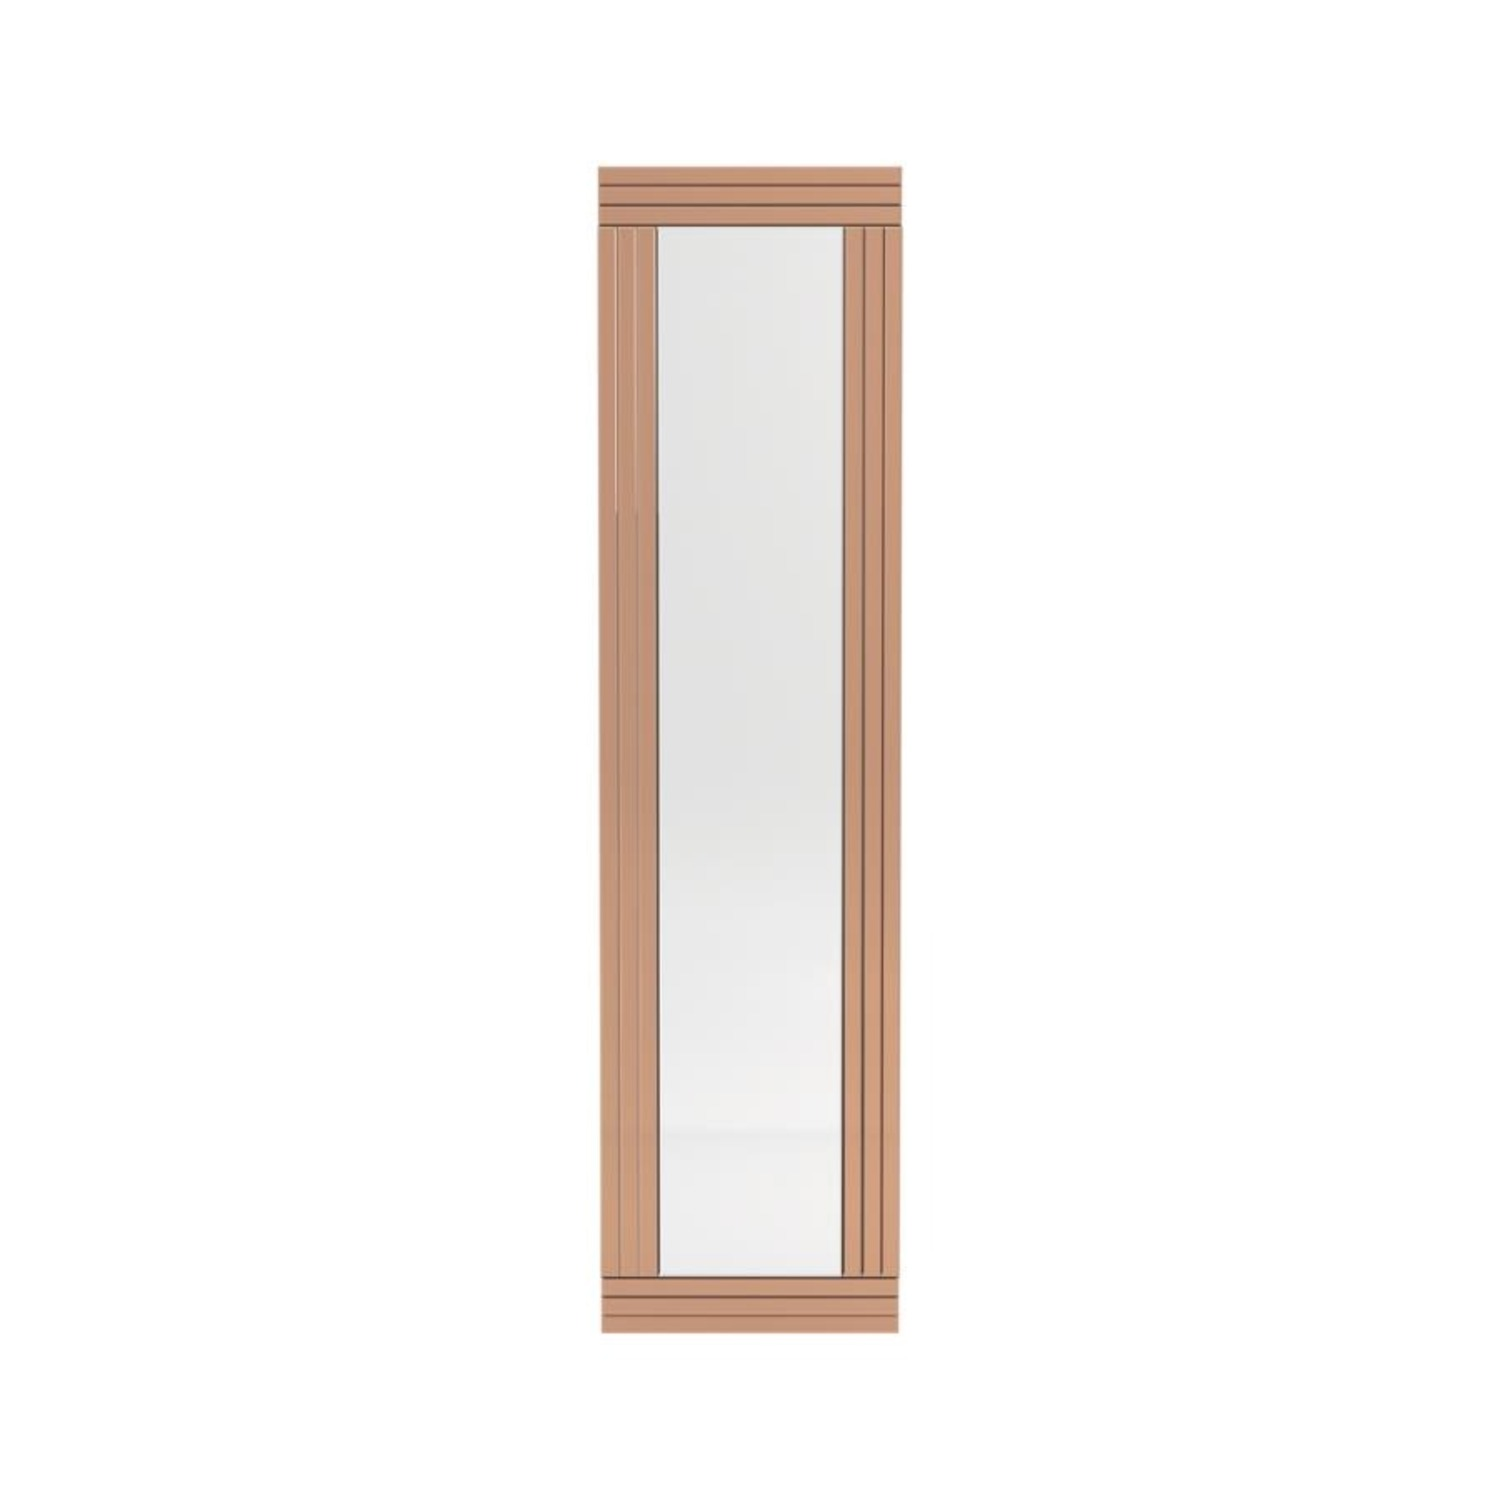 Wall Mirror In Rose Gold W/ Clean Lined Silhouette - image-1